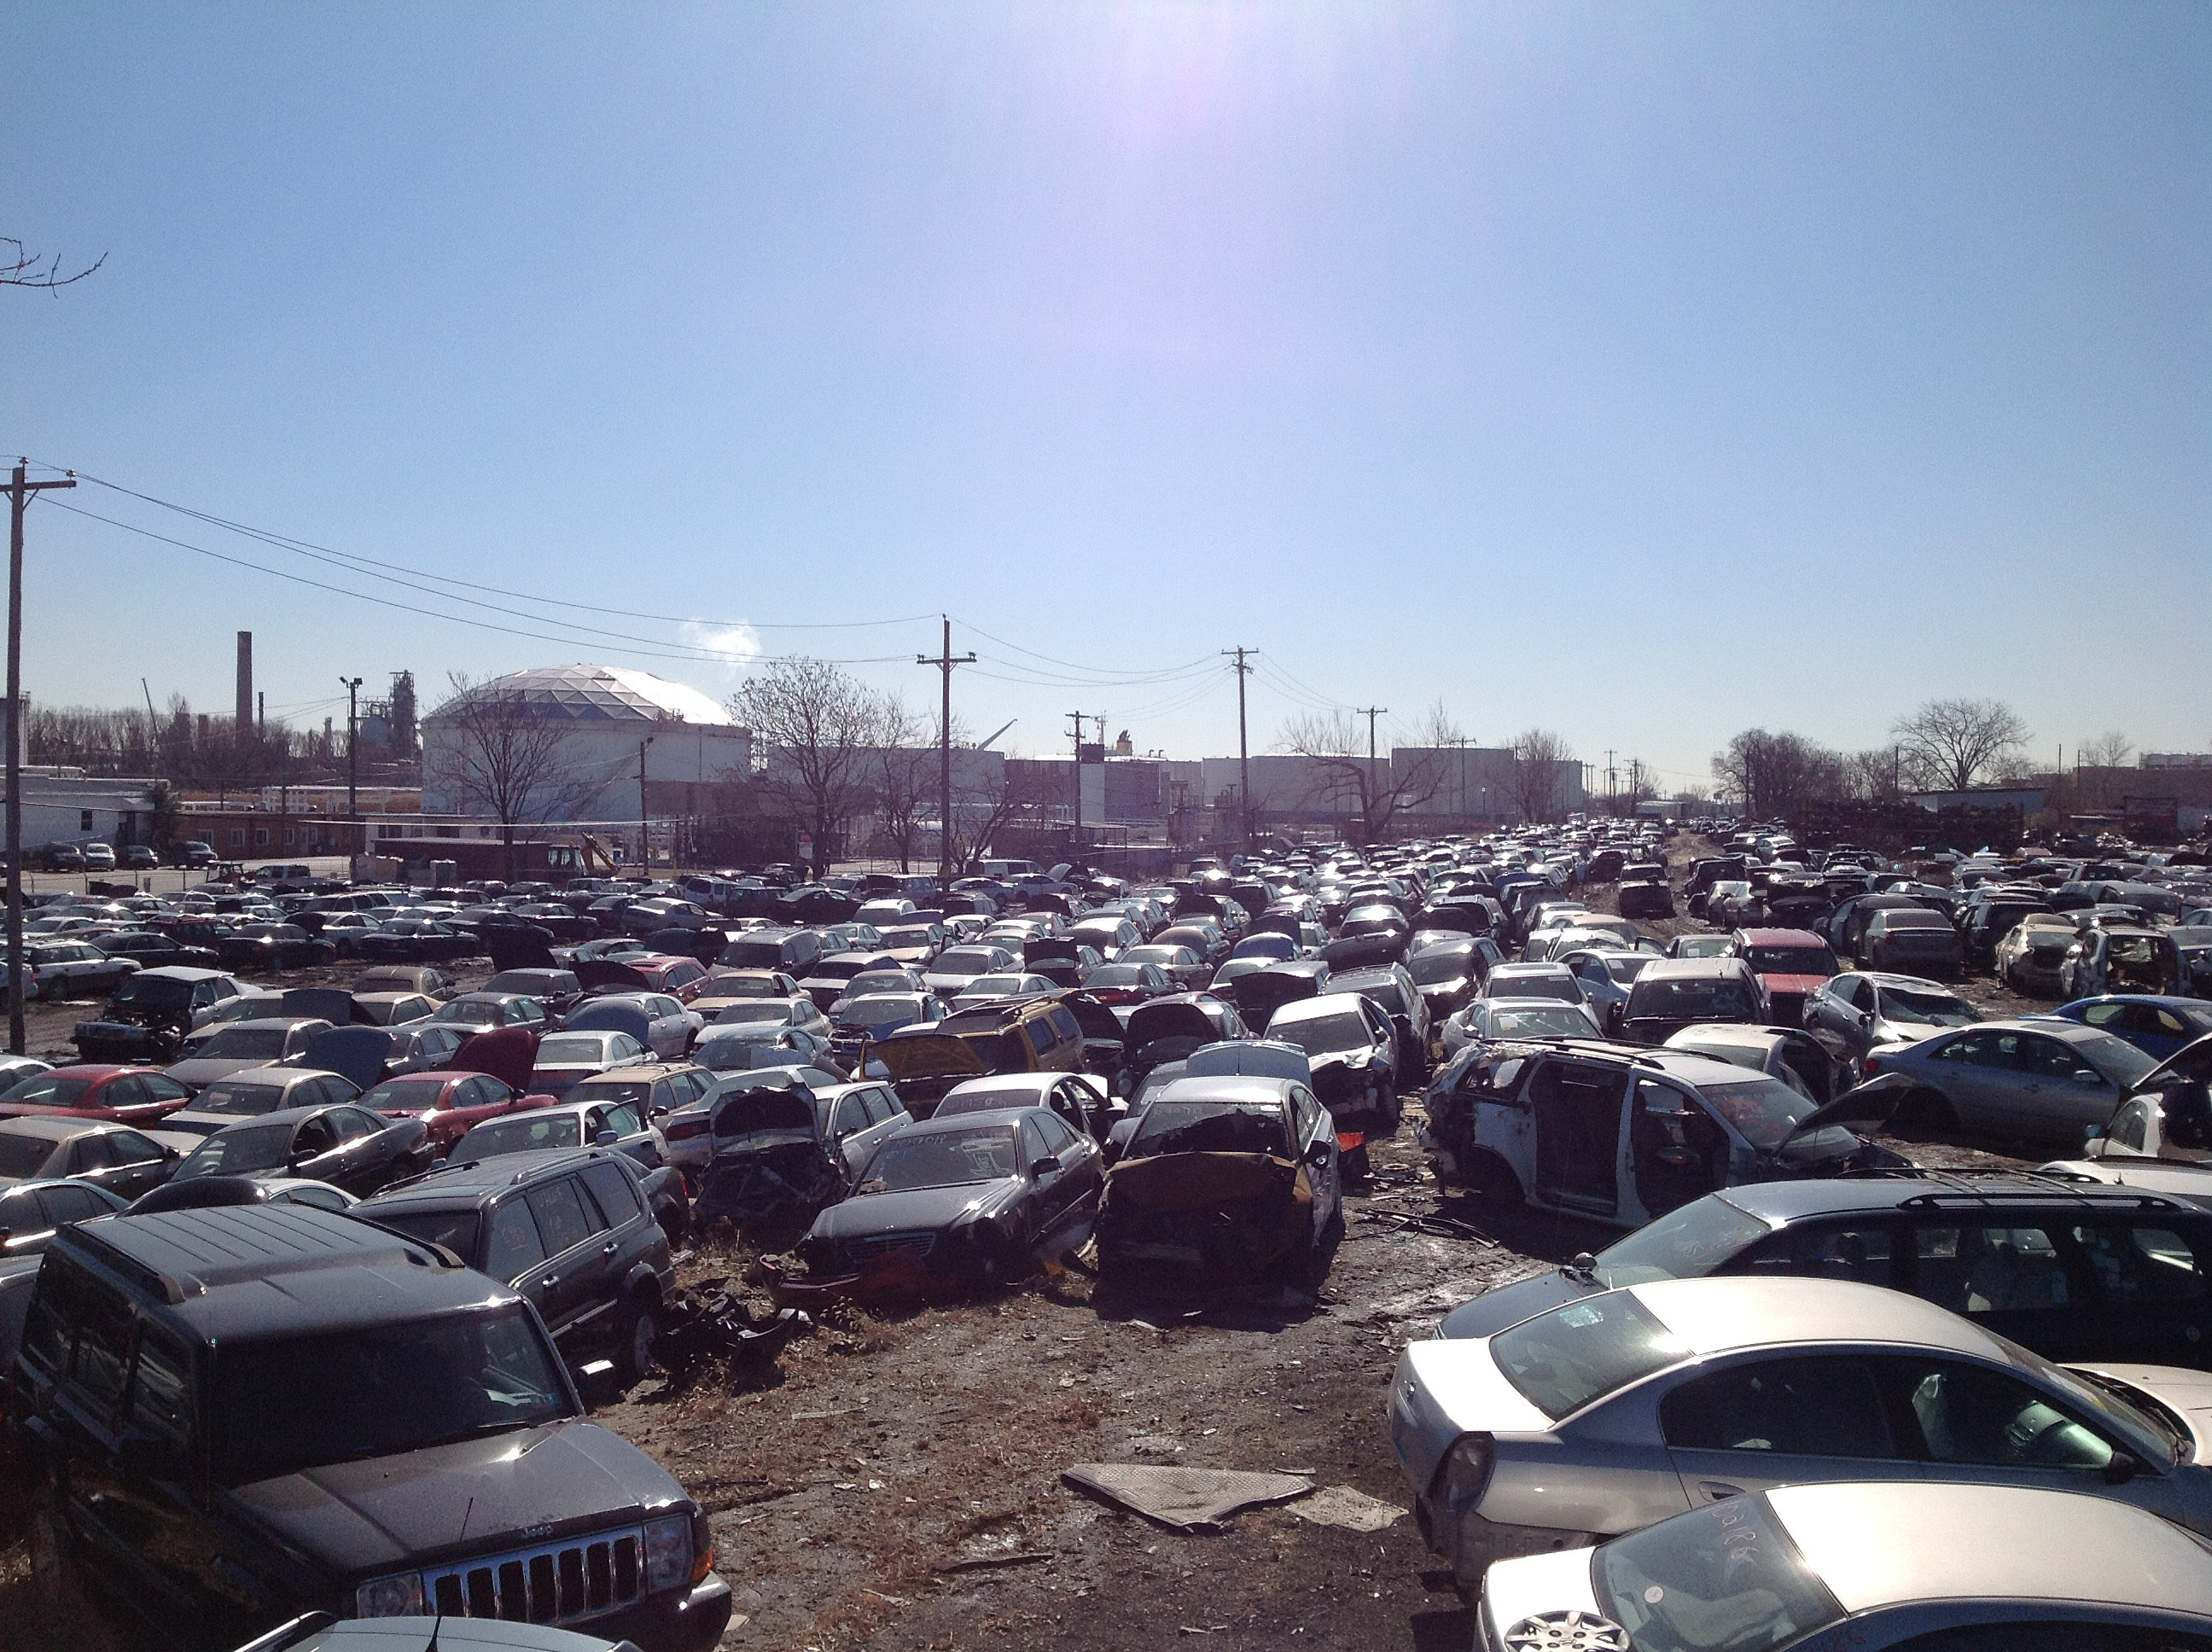 Used auto parts used car parts autos post for Mercedes benz junk yards miami